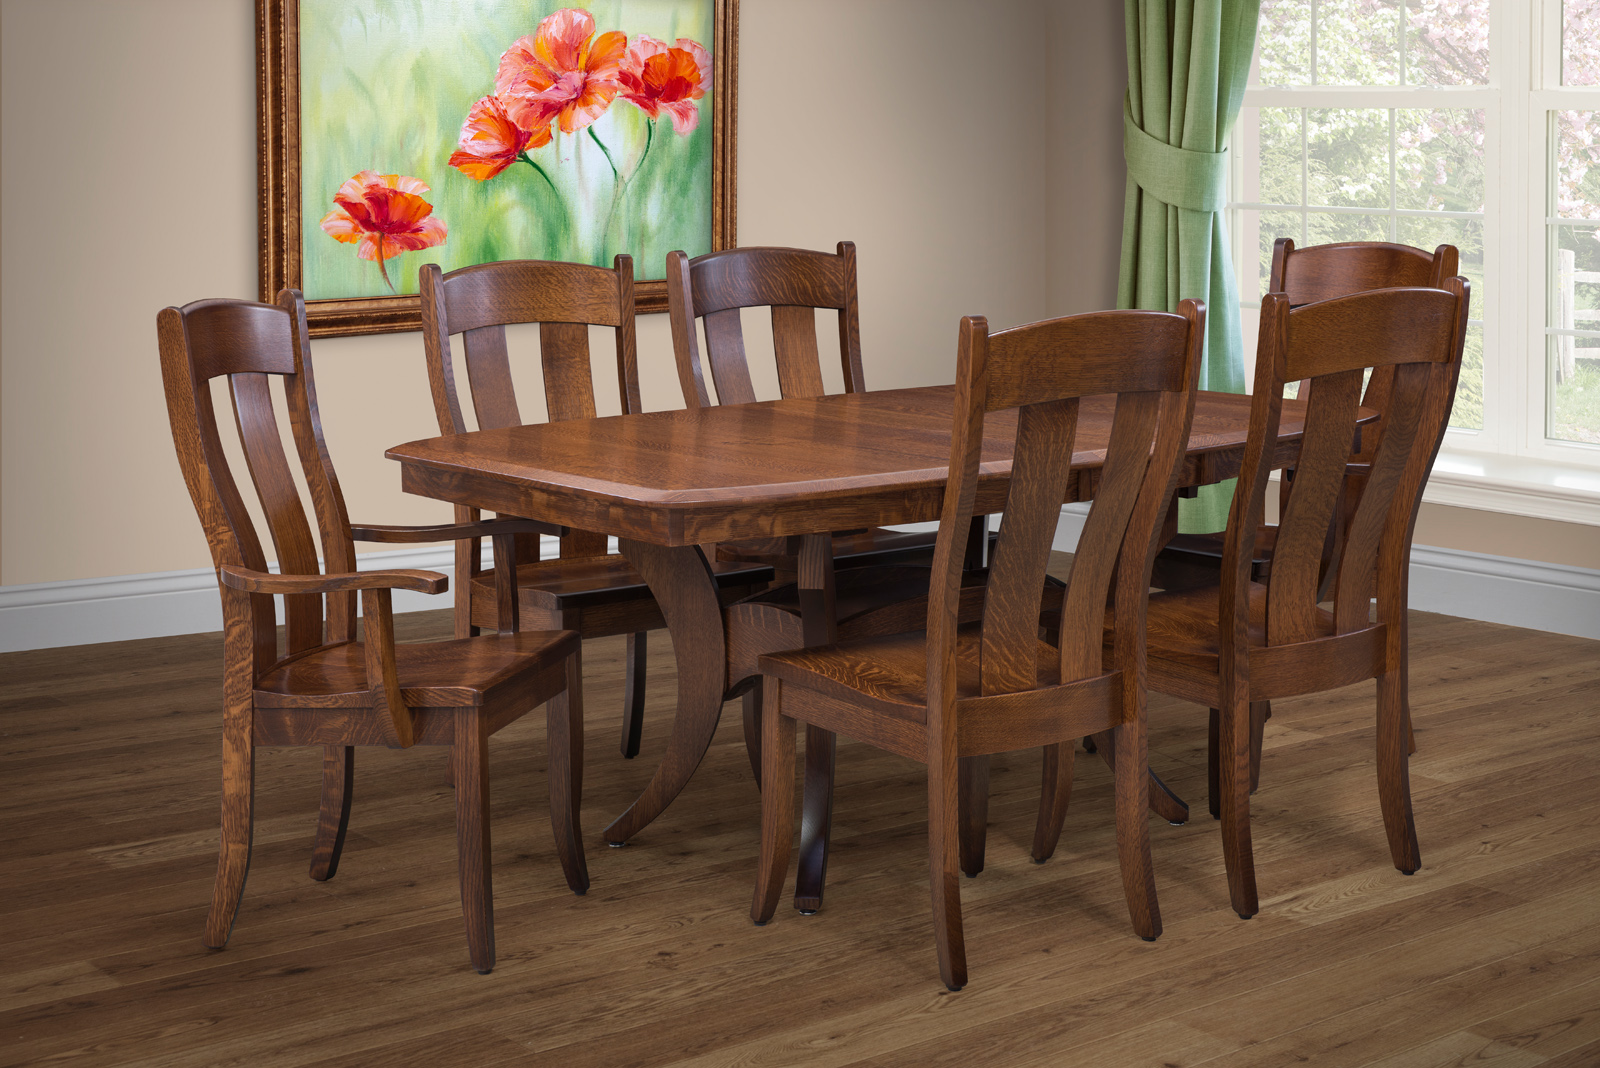 The Fort Knox Dining Collection